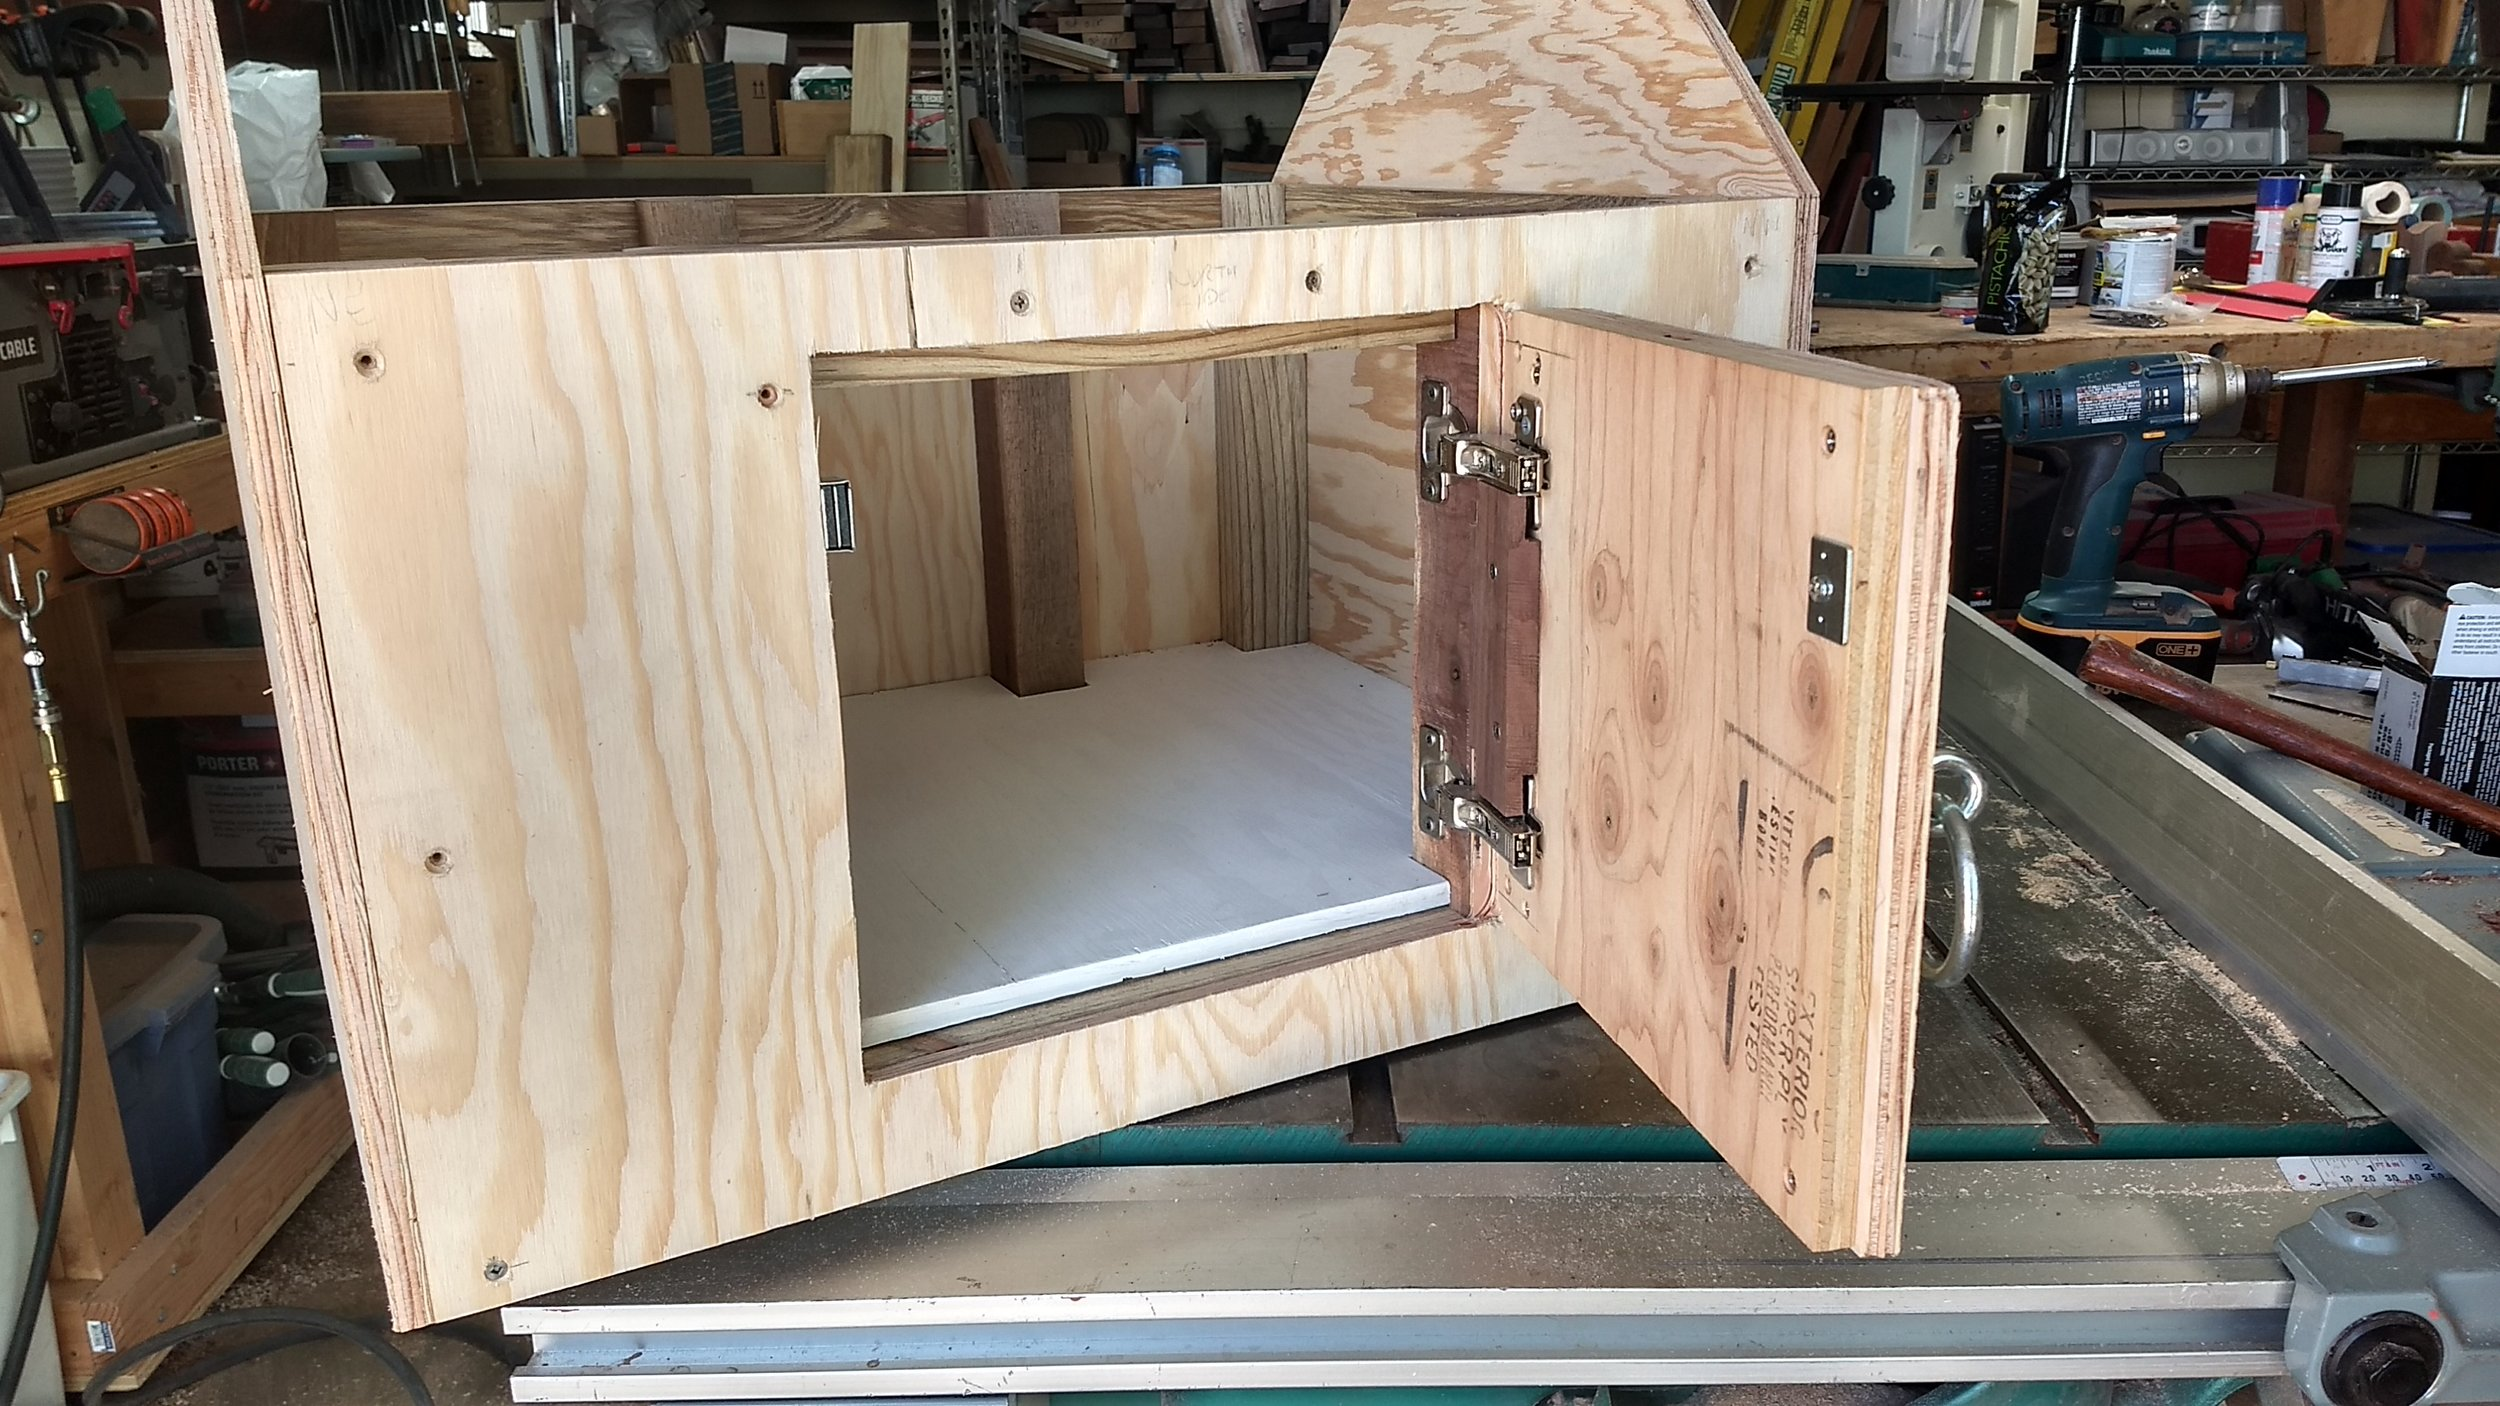 A hole for the door was cut into the plywood on front side. The door is tempoprarily attached with a all hardware installed.